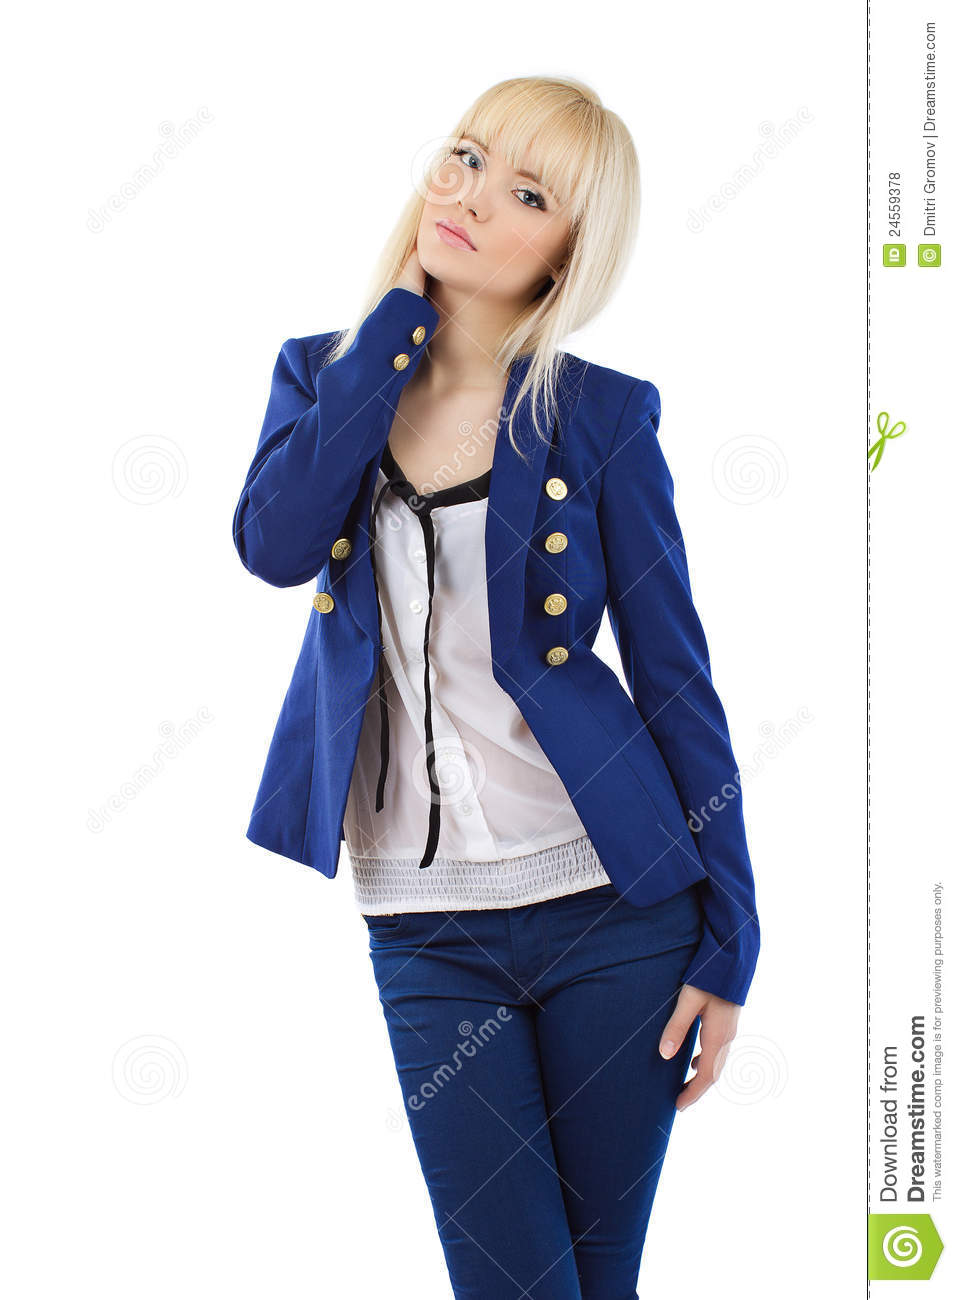 Blonde girl in blue pants and jacket